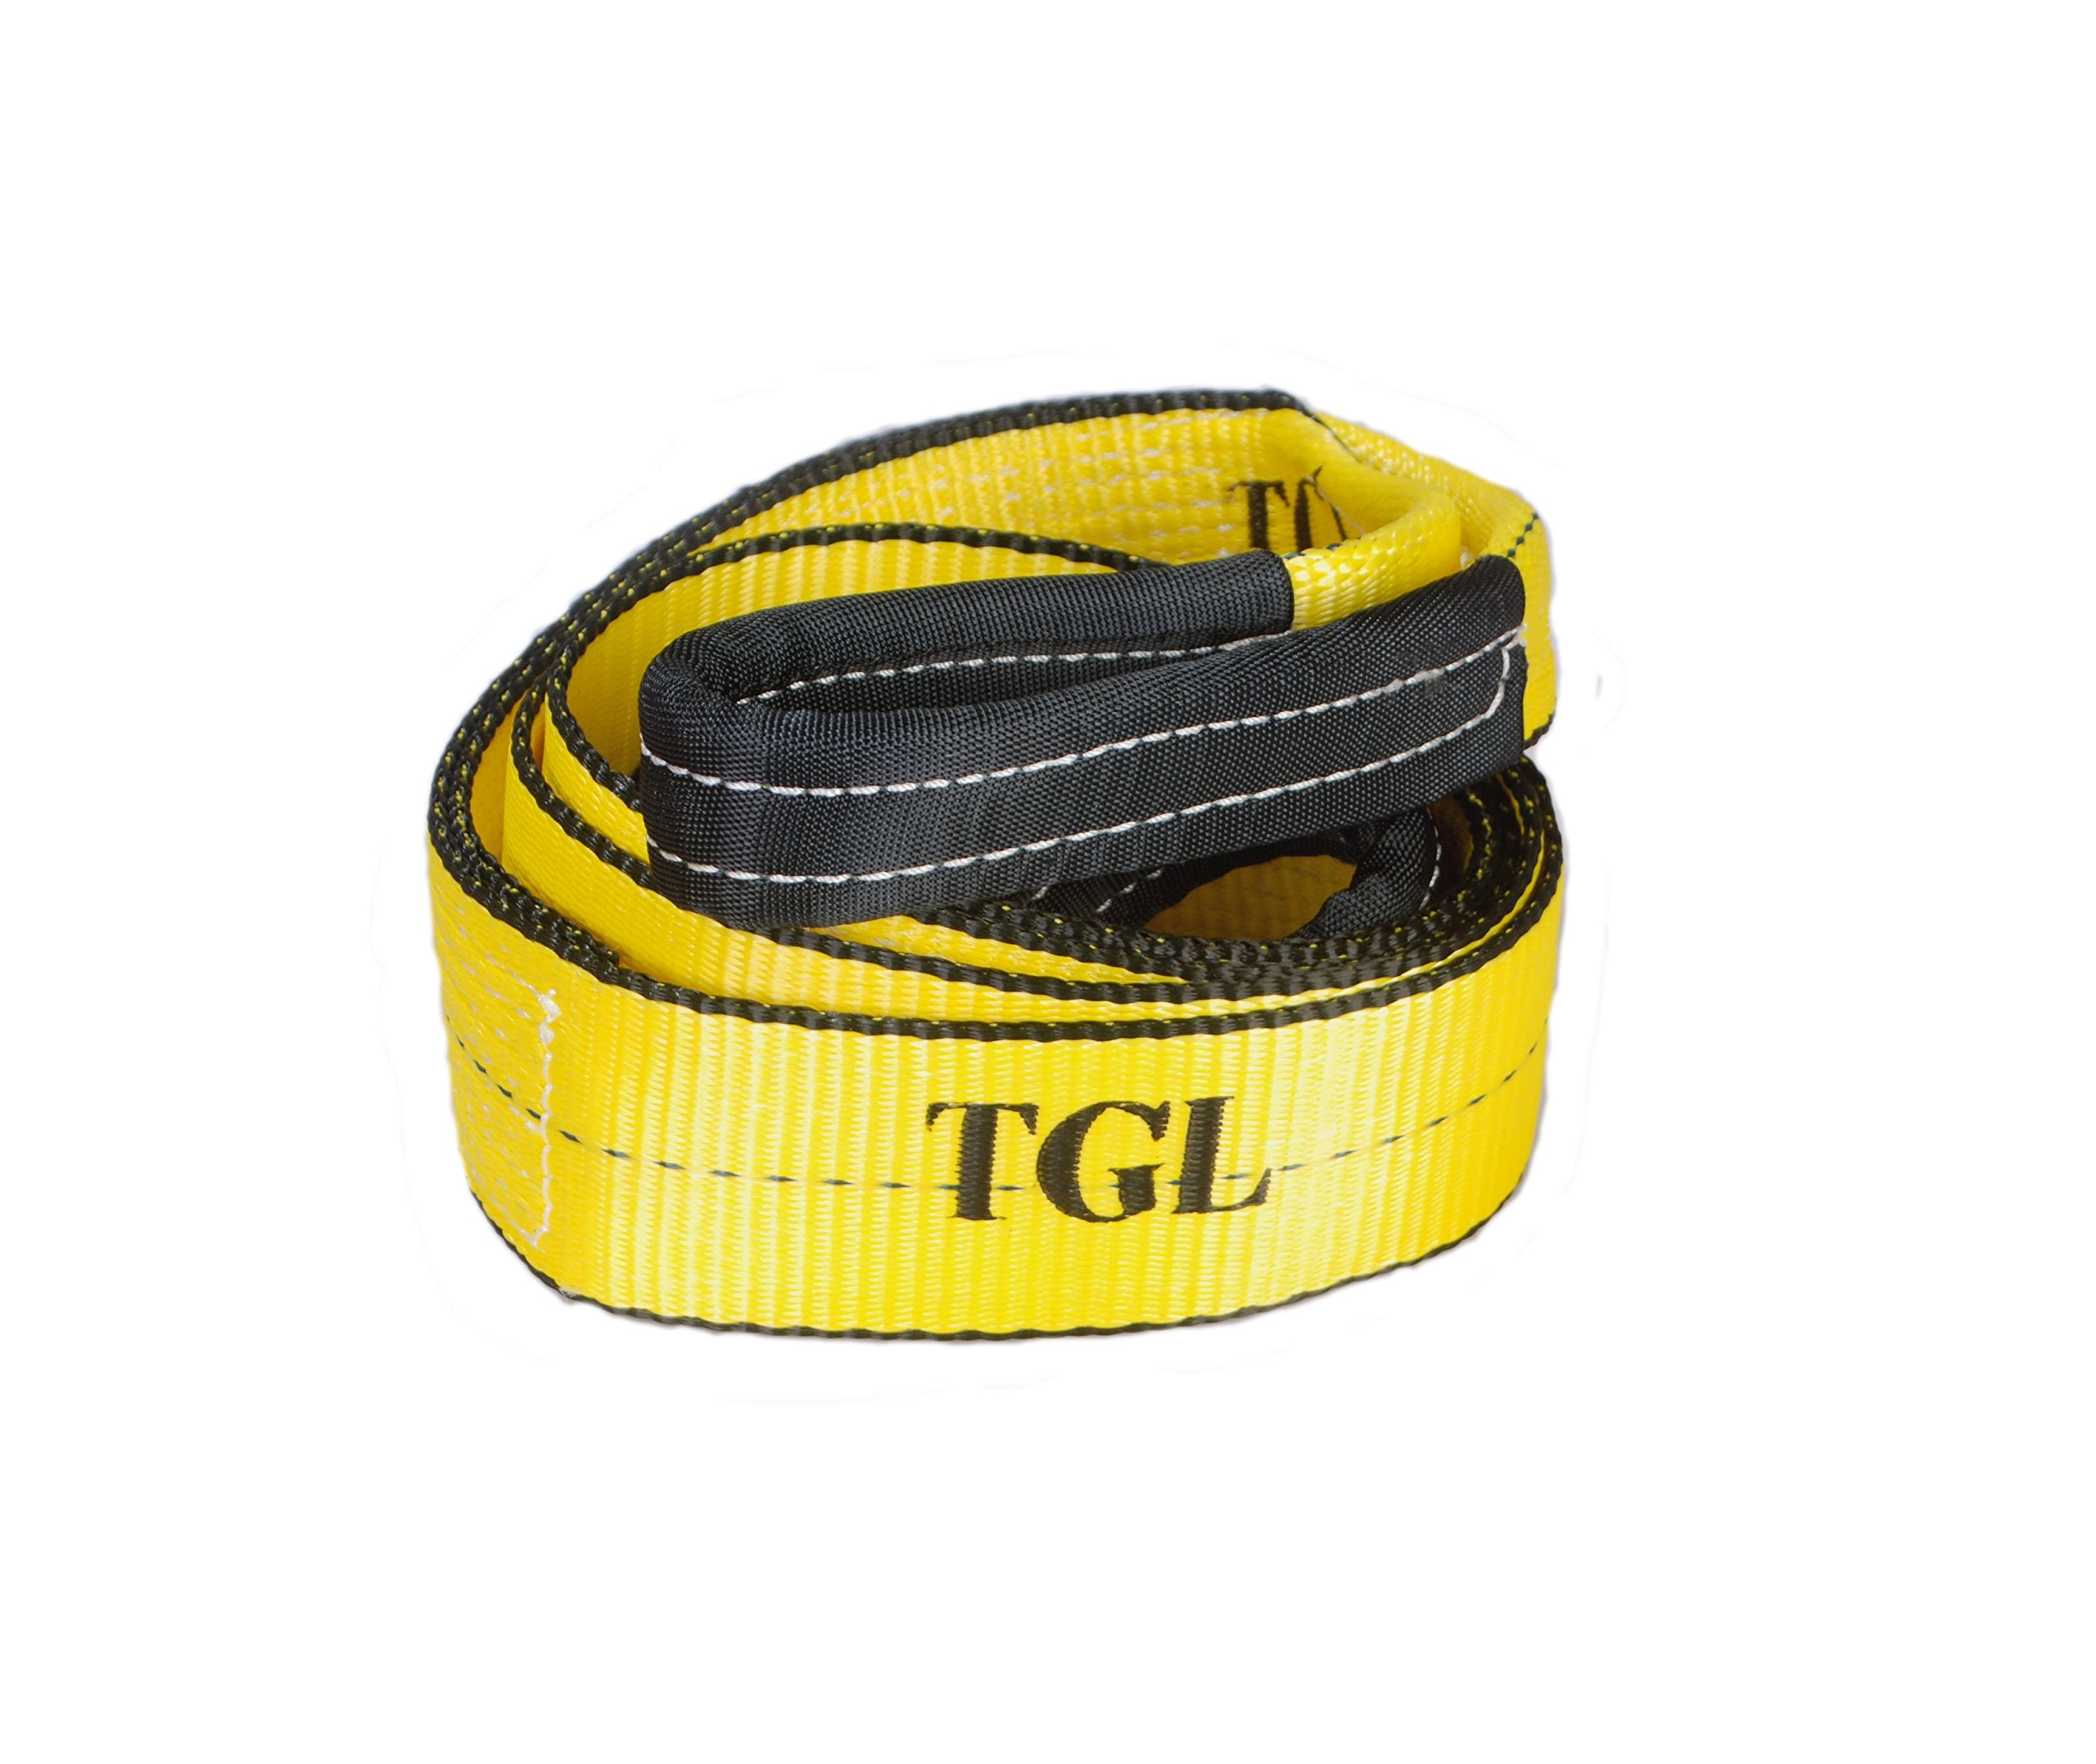 3'', 8' Tree Saver, Winch Strap, Tow Strap 30,000 Pound Capacity